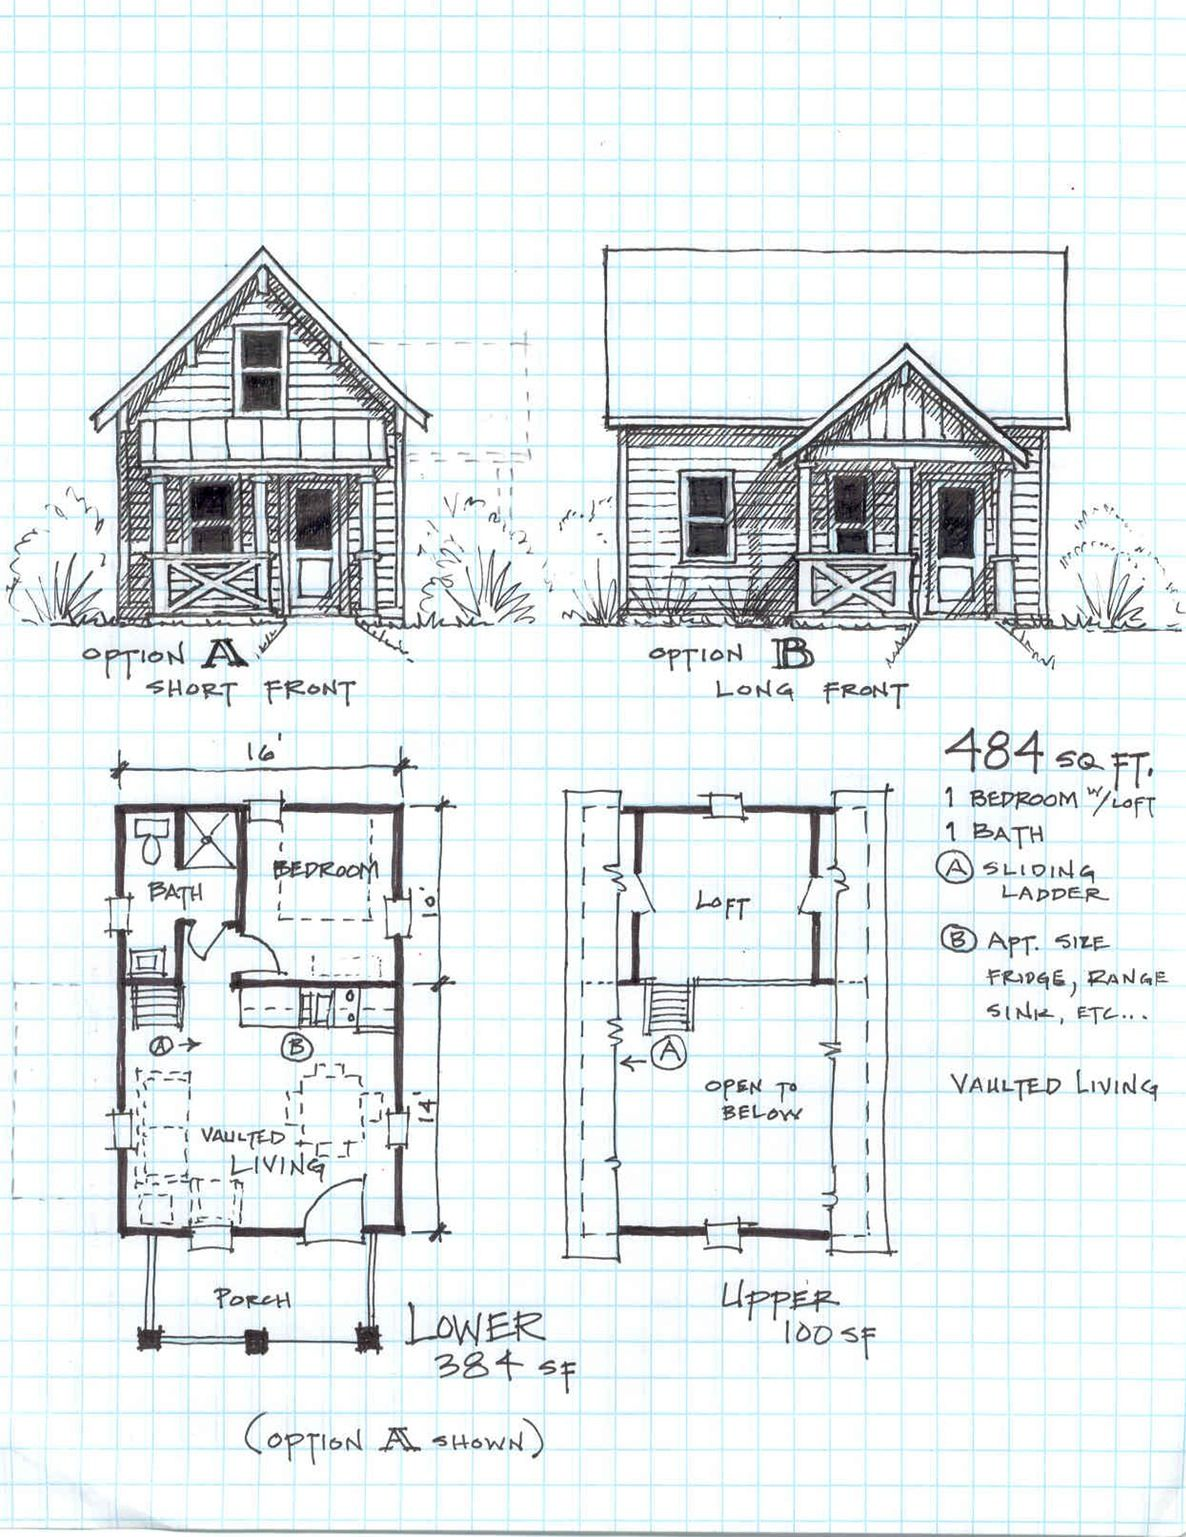 Garden Cottage F One Level With Loft Small House Plans Small House Kits Small Houses Small House Small Cabin Plans Small House Floor Plans Loft Floor Plans